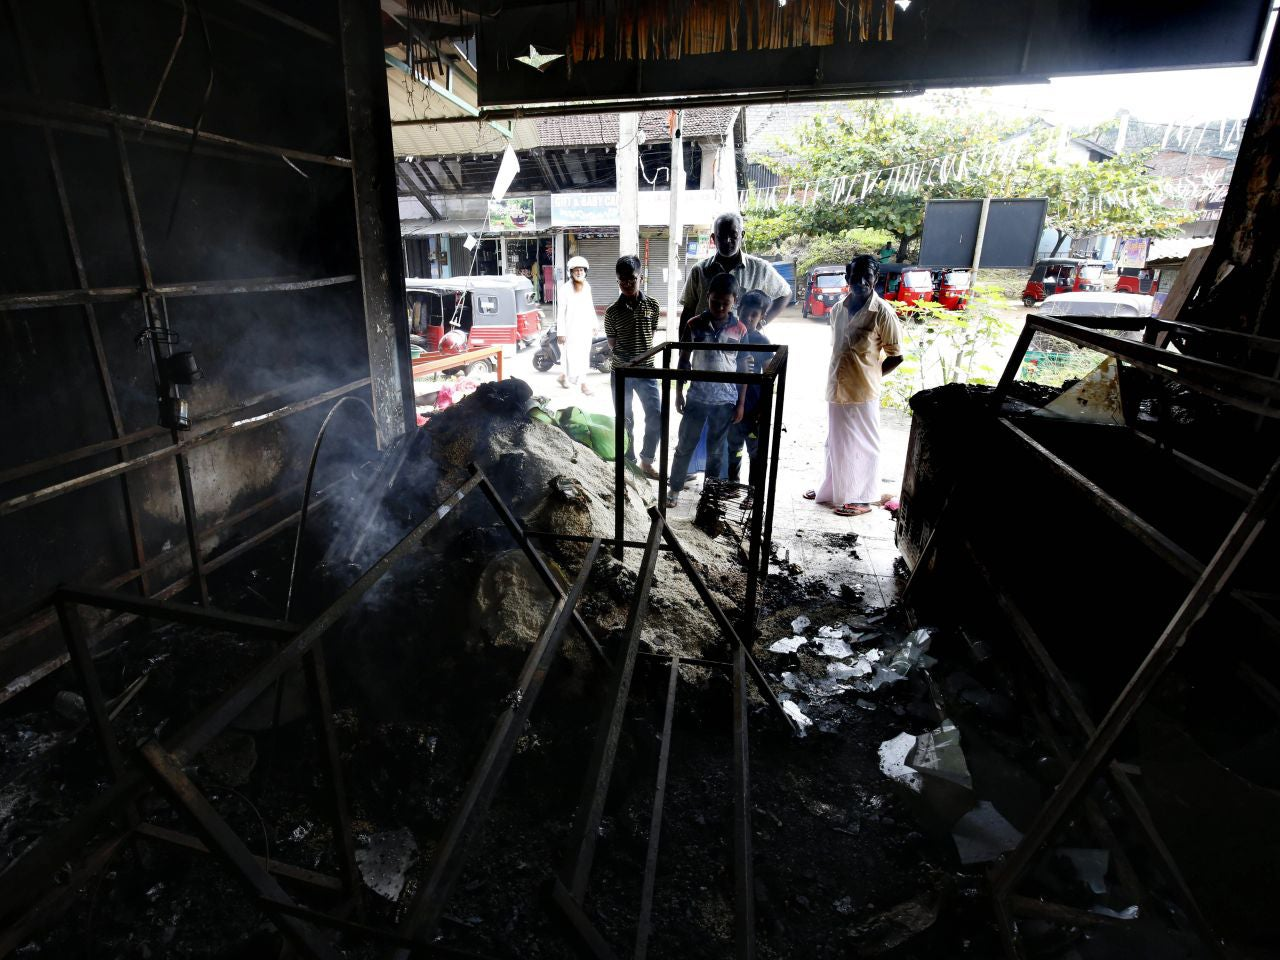 Sri Lanka stands at crossroads amid fears Buddhist-Muslim tensions will erupt in widespread violence